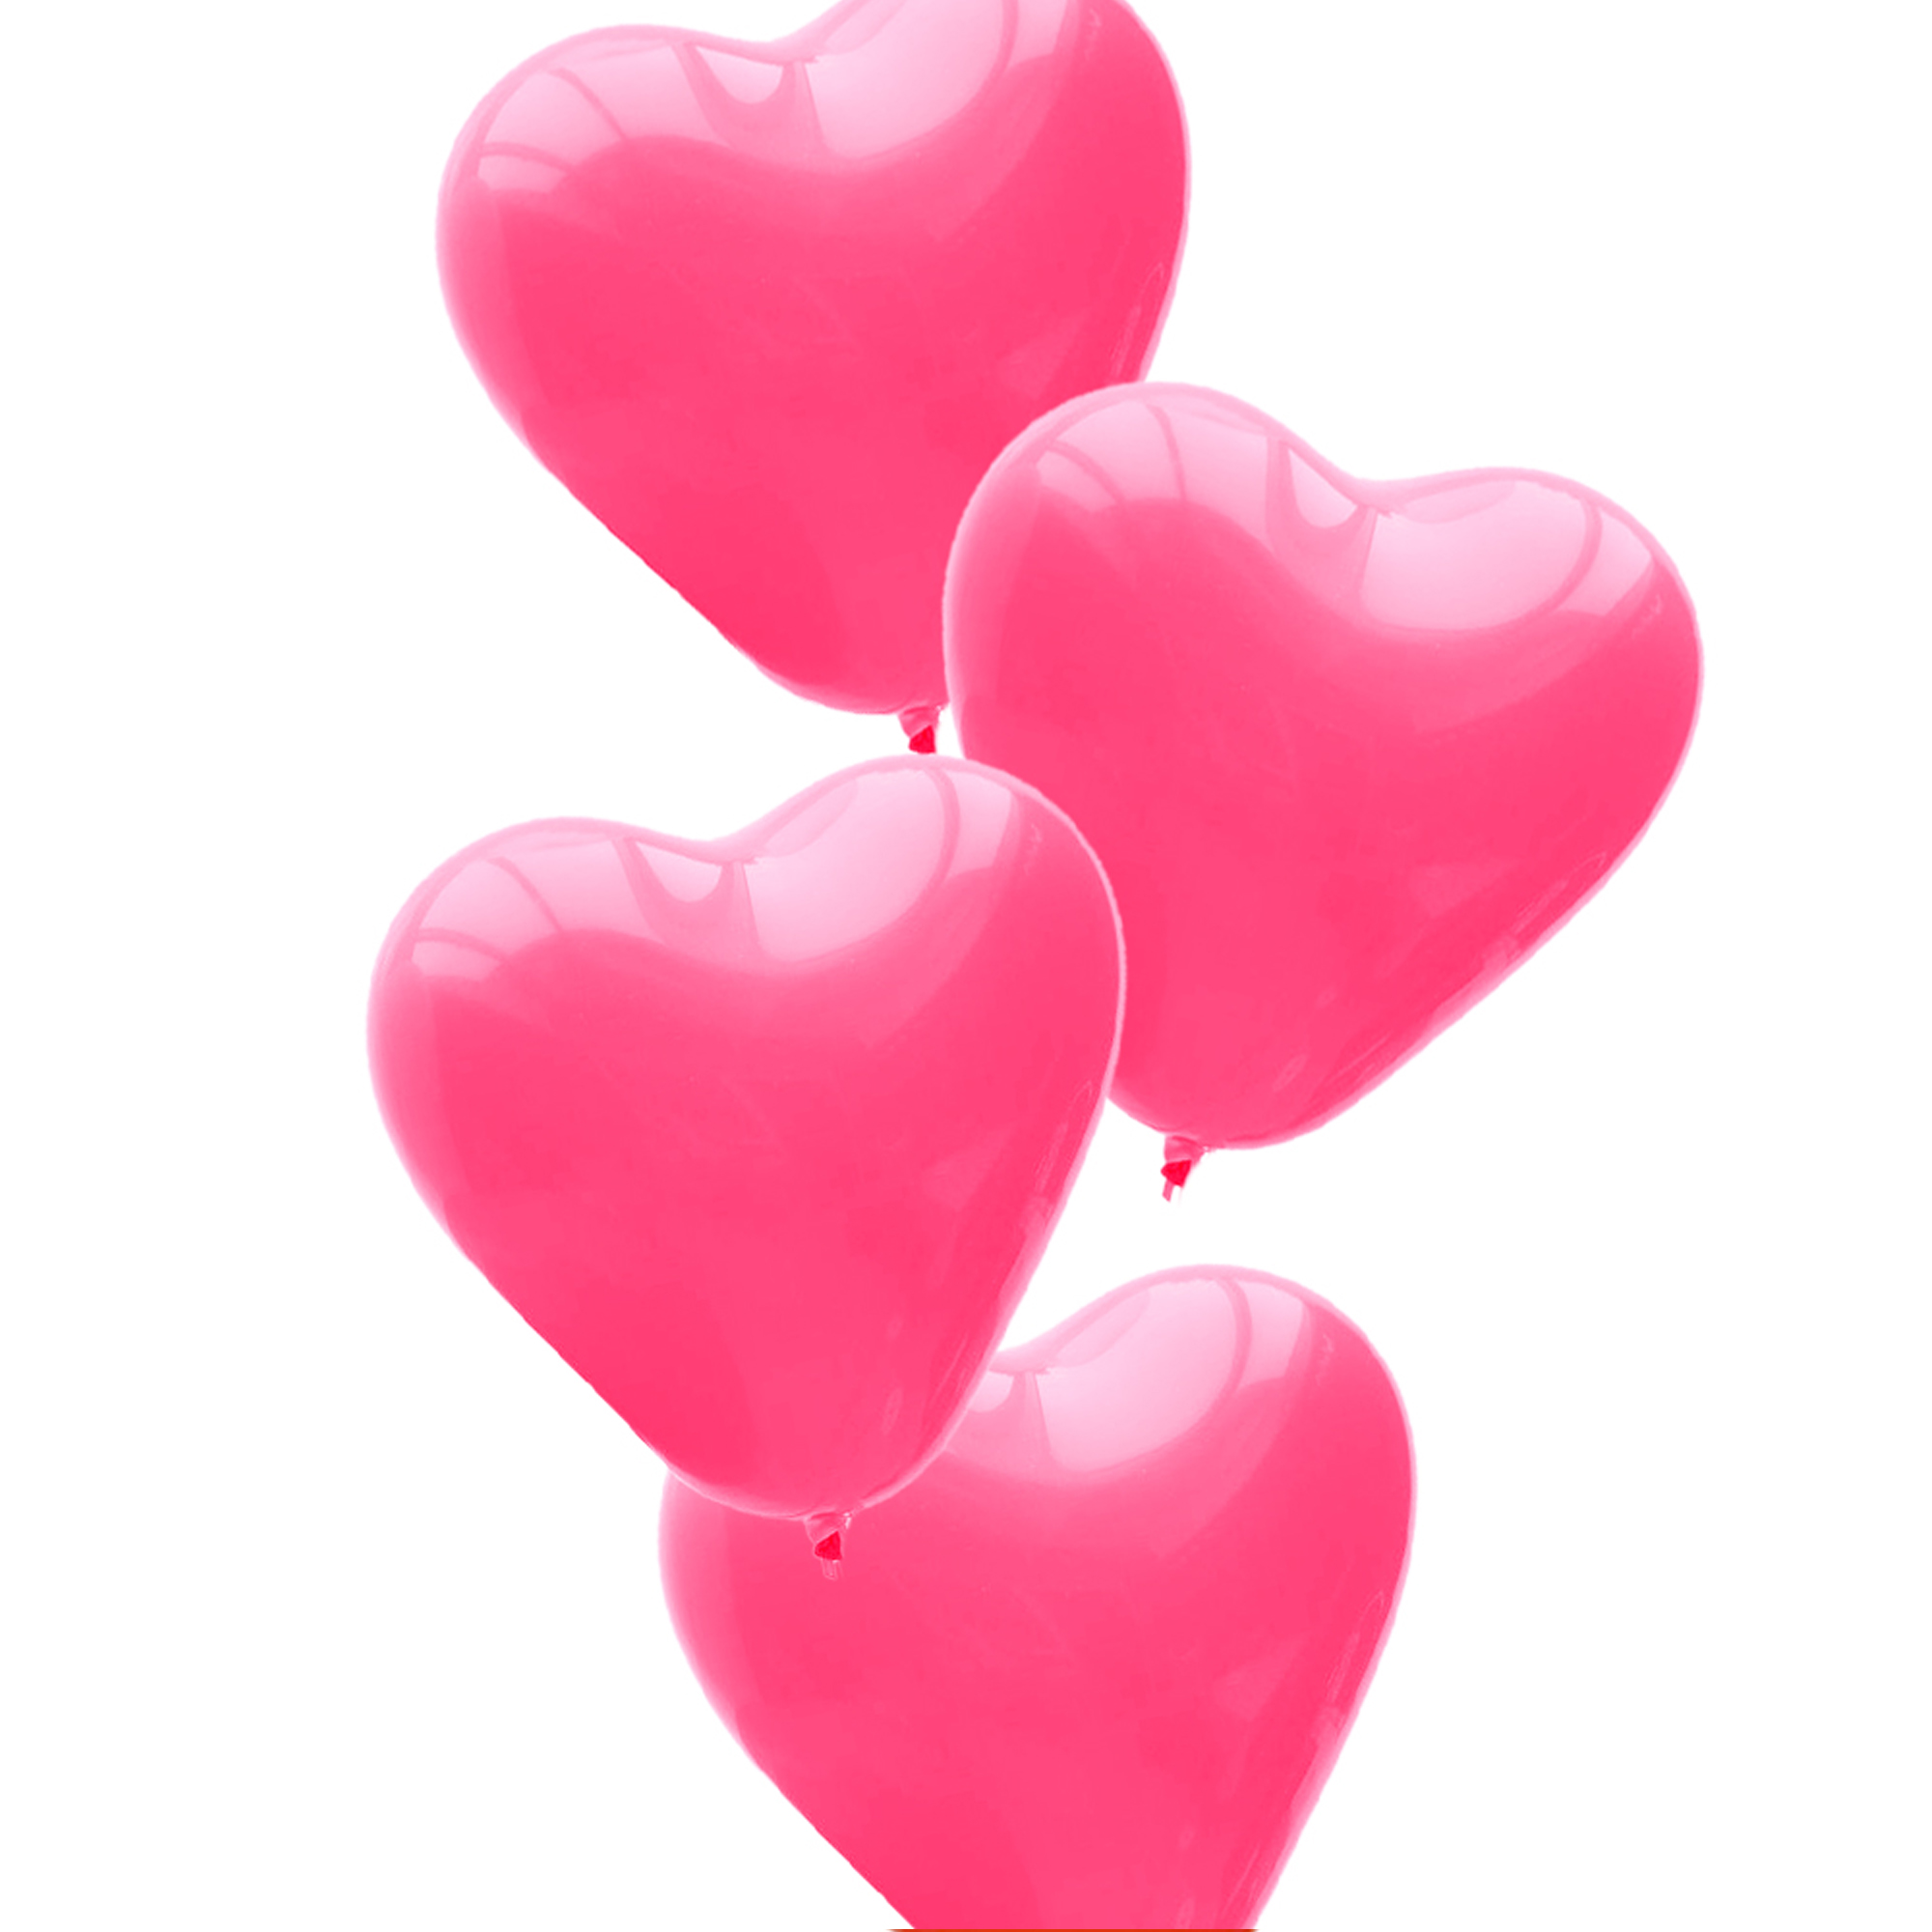 25pcs, The Elixir Party Heart Balloons Decoration Balloons Latex Balloons with Helium Quality for Birthday, Propose, Wedding, and Anniversary Party, Pink